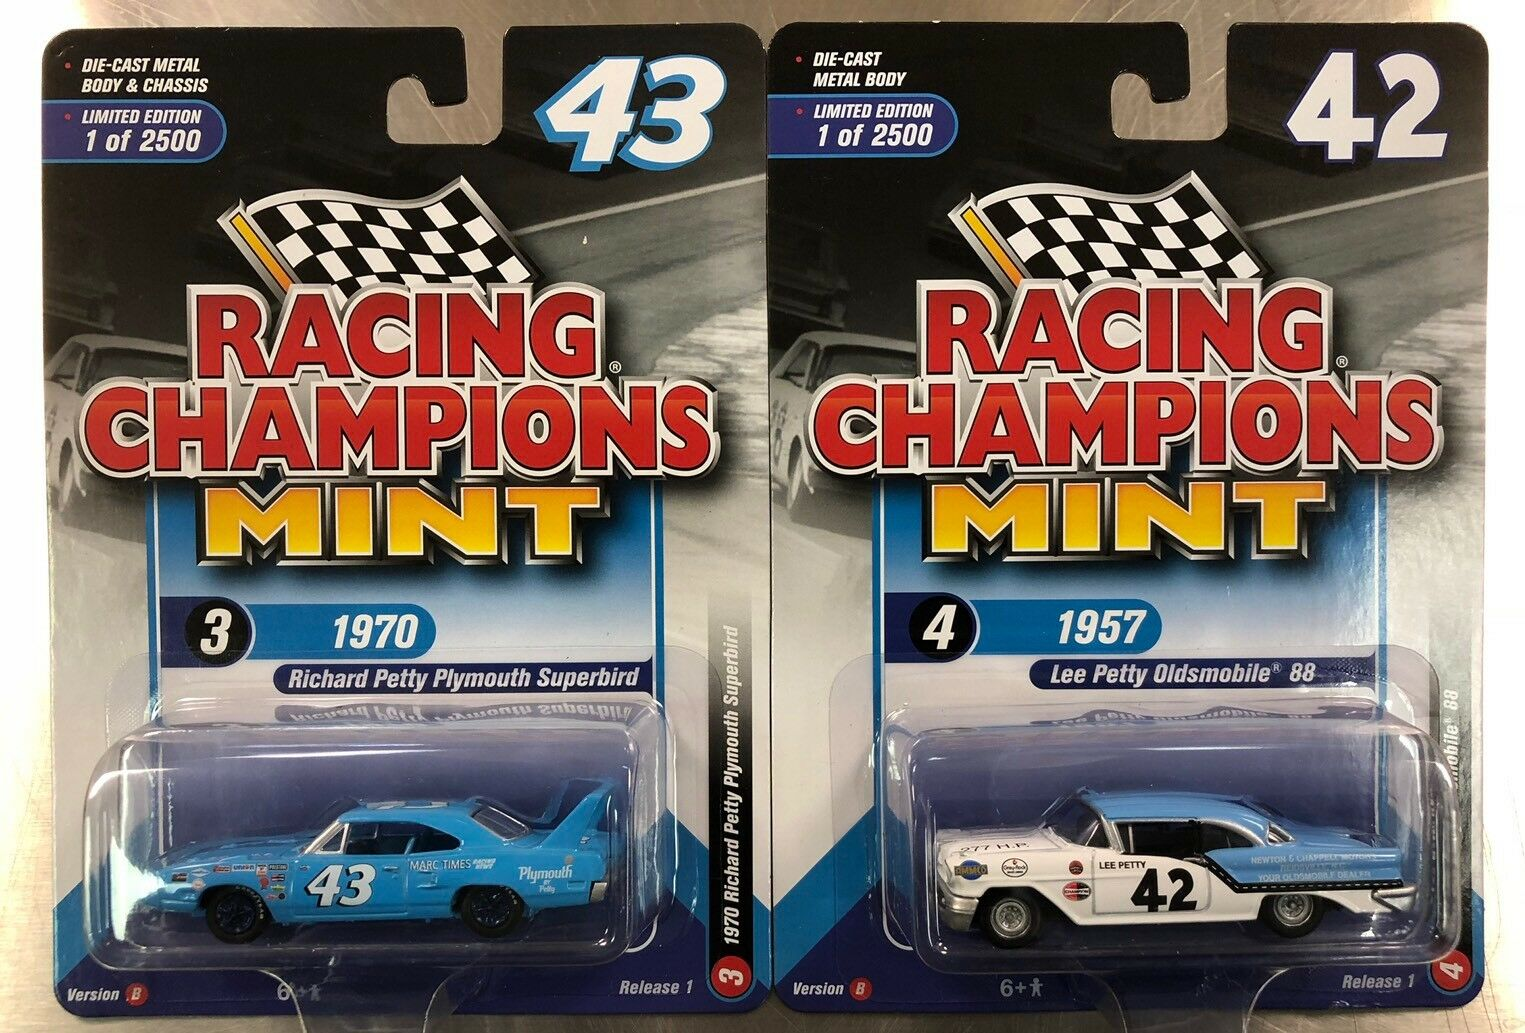 Racing Champions Lee & Richard pety 1957  Olds 88 & 1970 Plymouth Superbird Lot  réduction en ligne